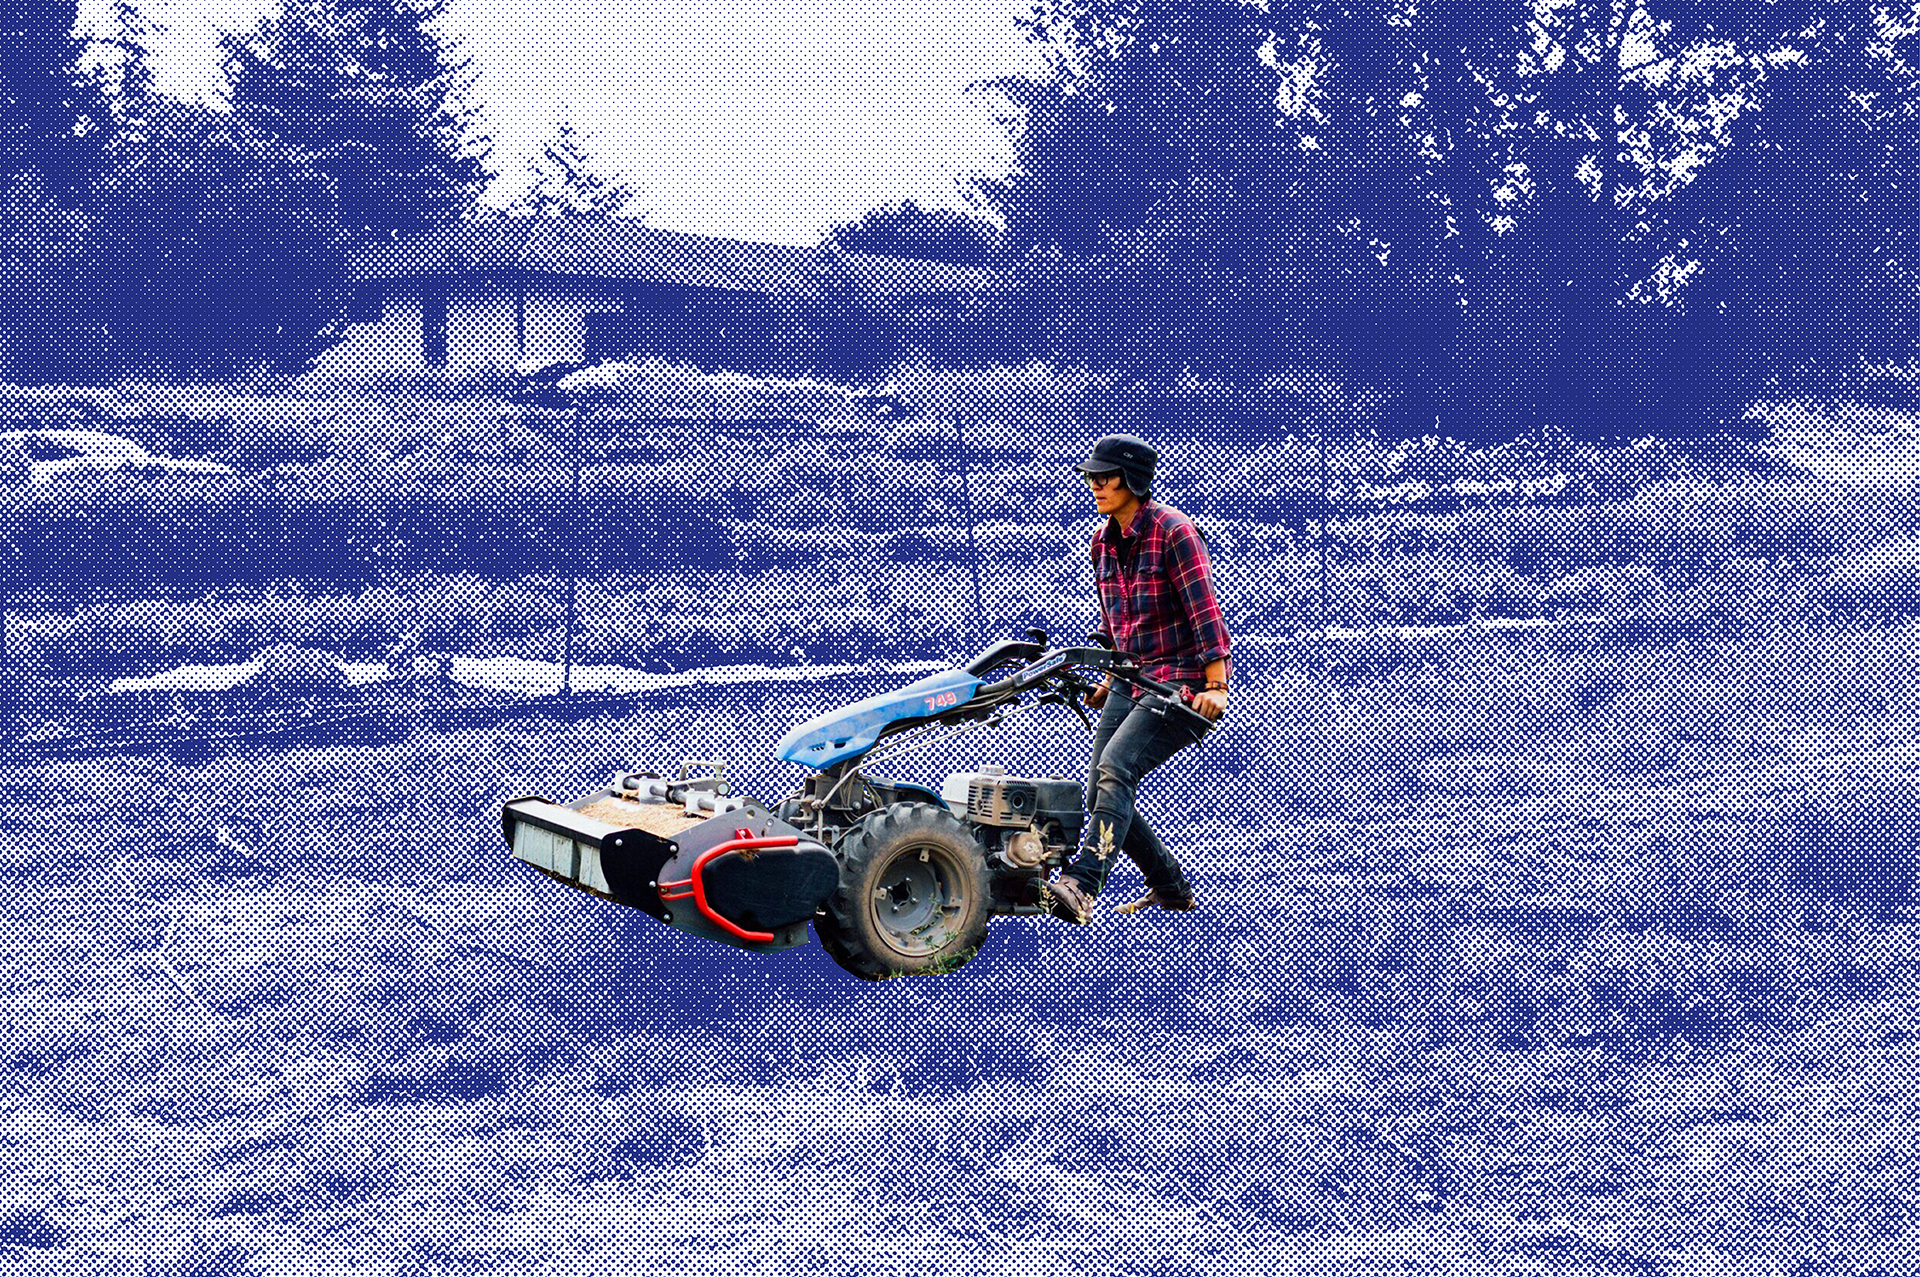 Leslie Wiser pushes a plow in a field; the backdrop of the field is shaded blue.